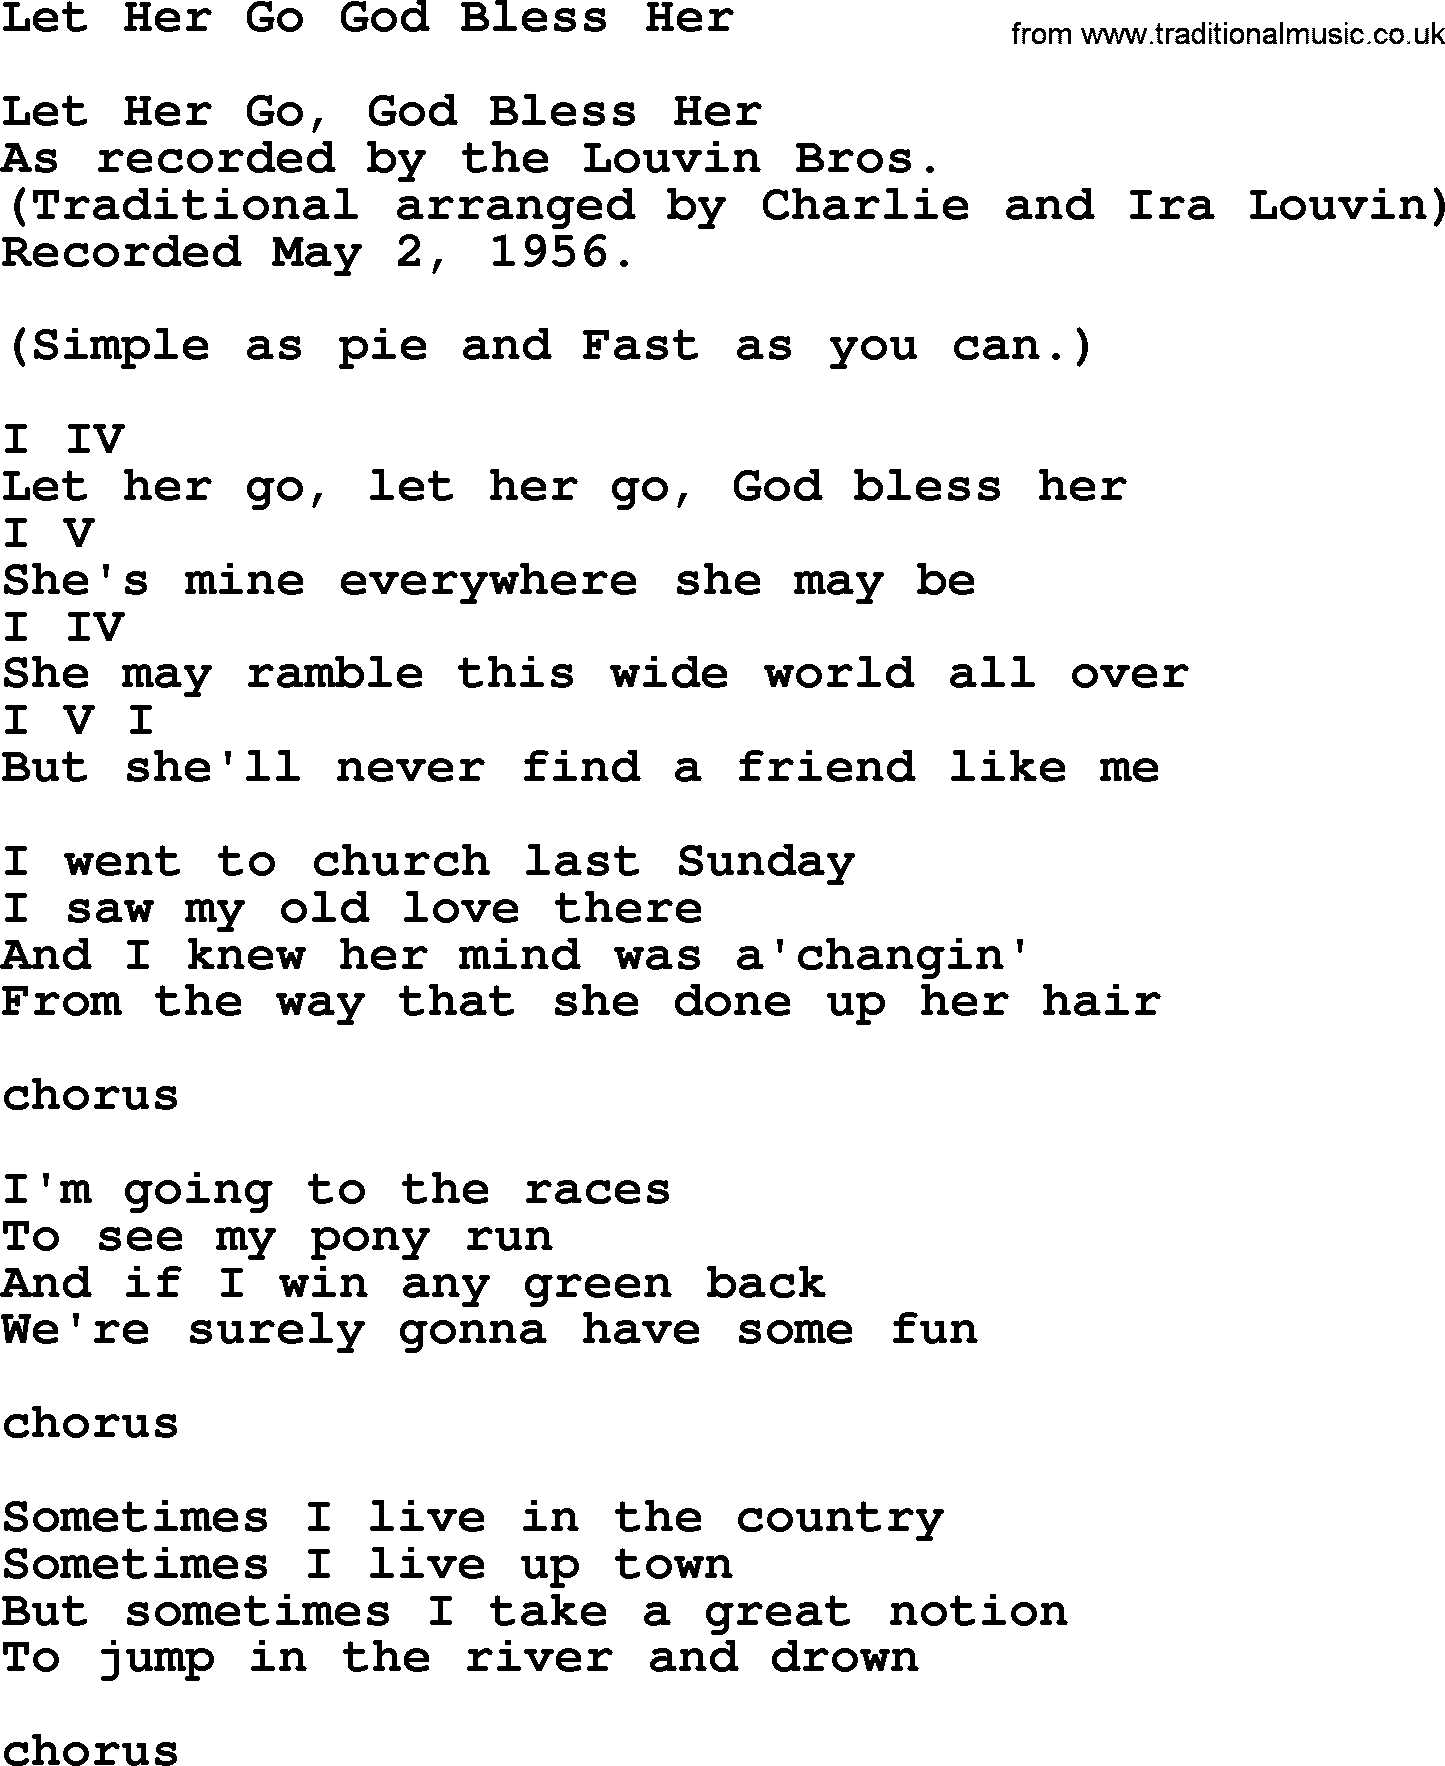 Let Her Go God Bless Her - Bluegrass lyrics with chords